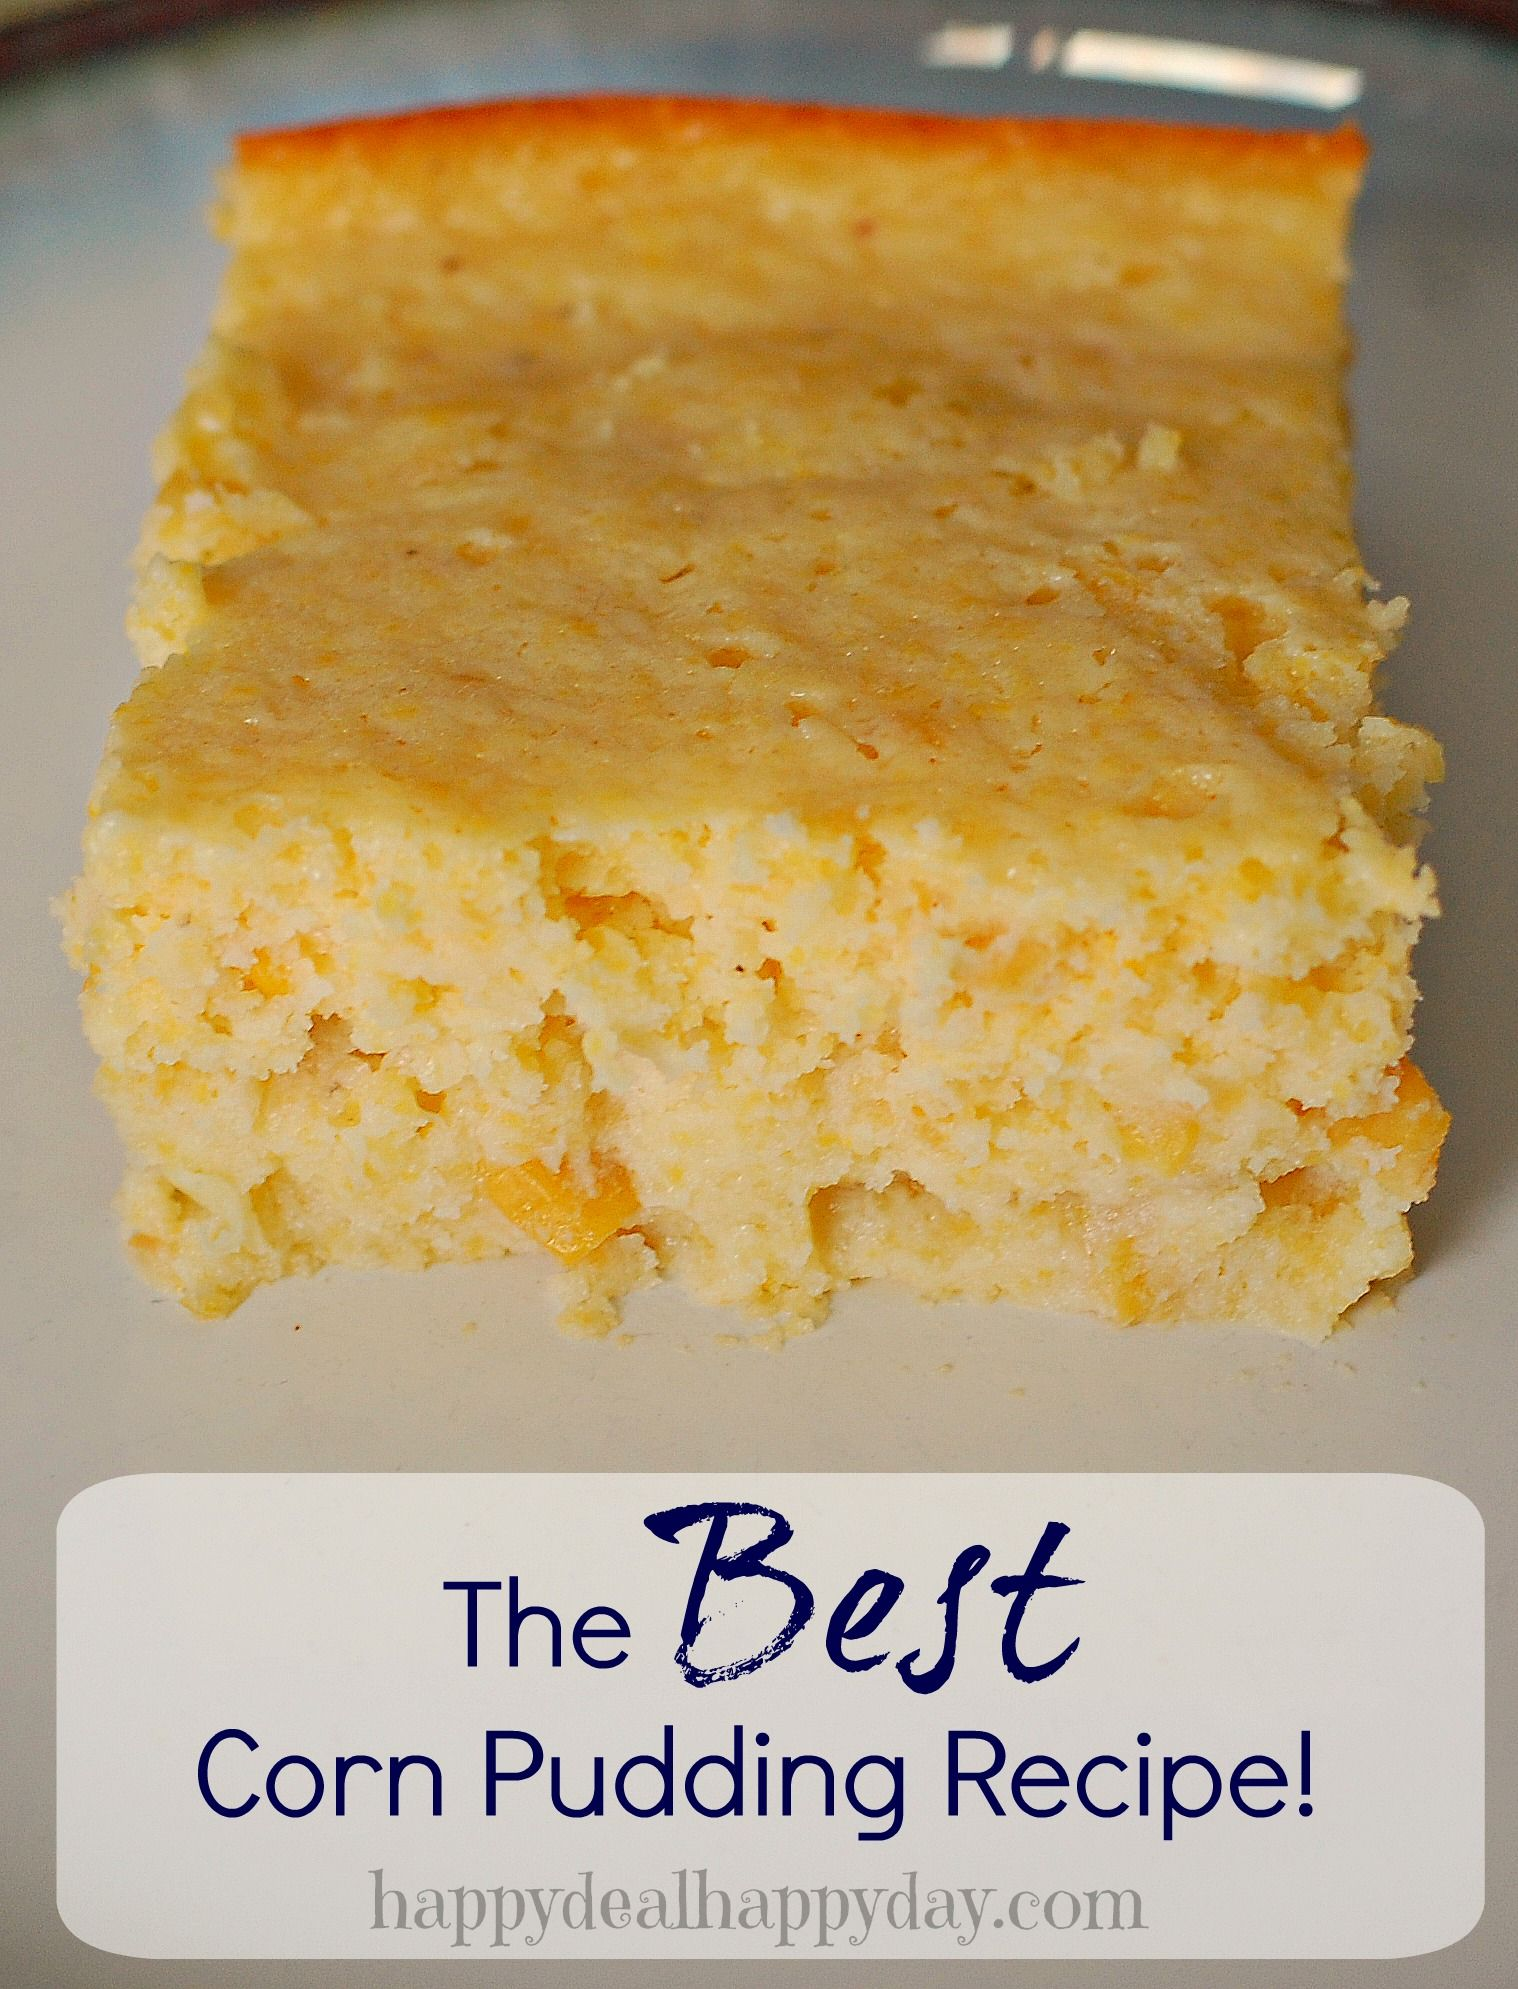 The Sweetest Best Corn Pudding Recipe Happy Deal Happy Day Recipe Corn Pudding Recipes Pudding Recipes Recipes